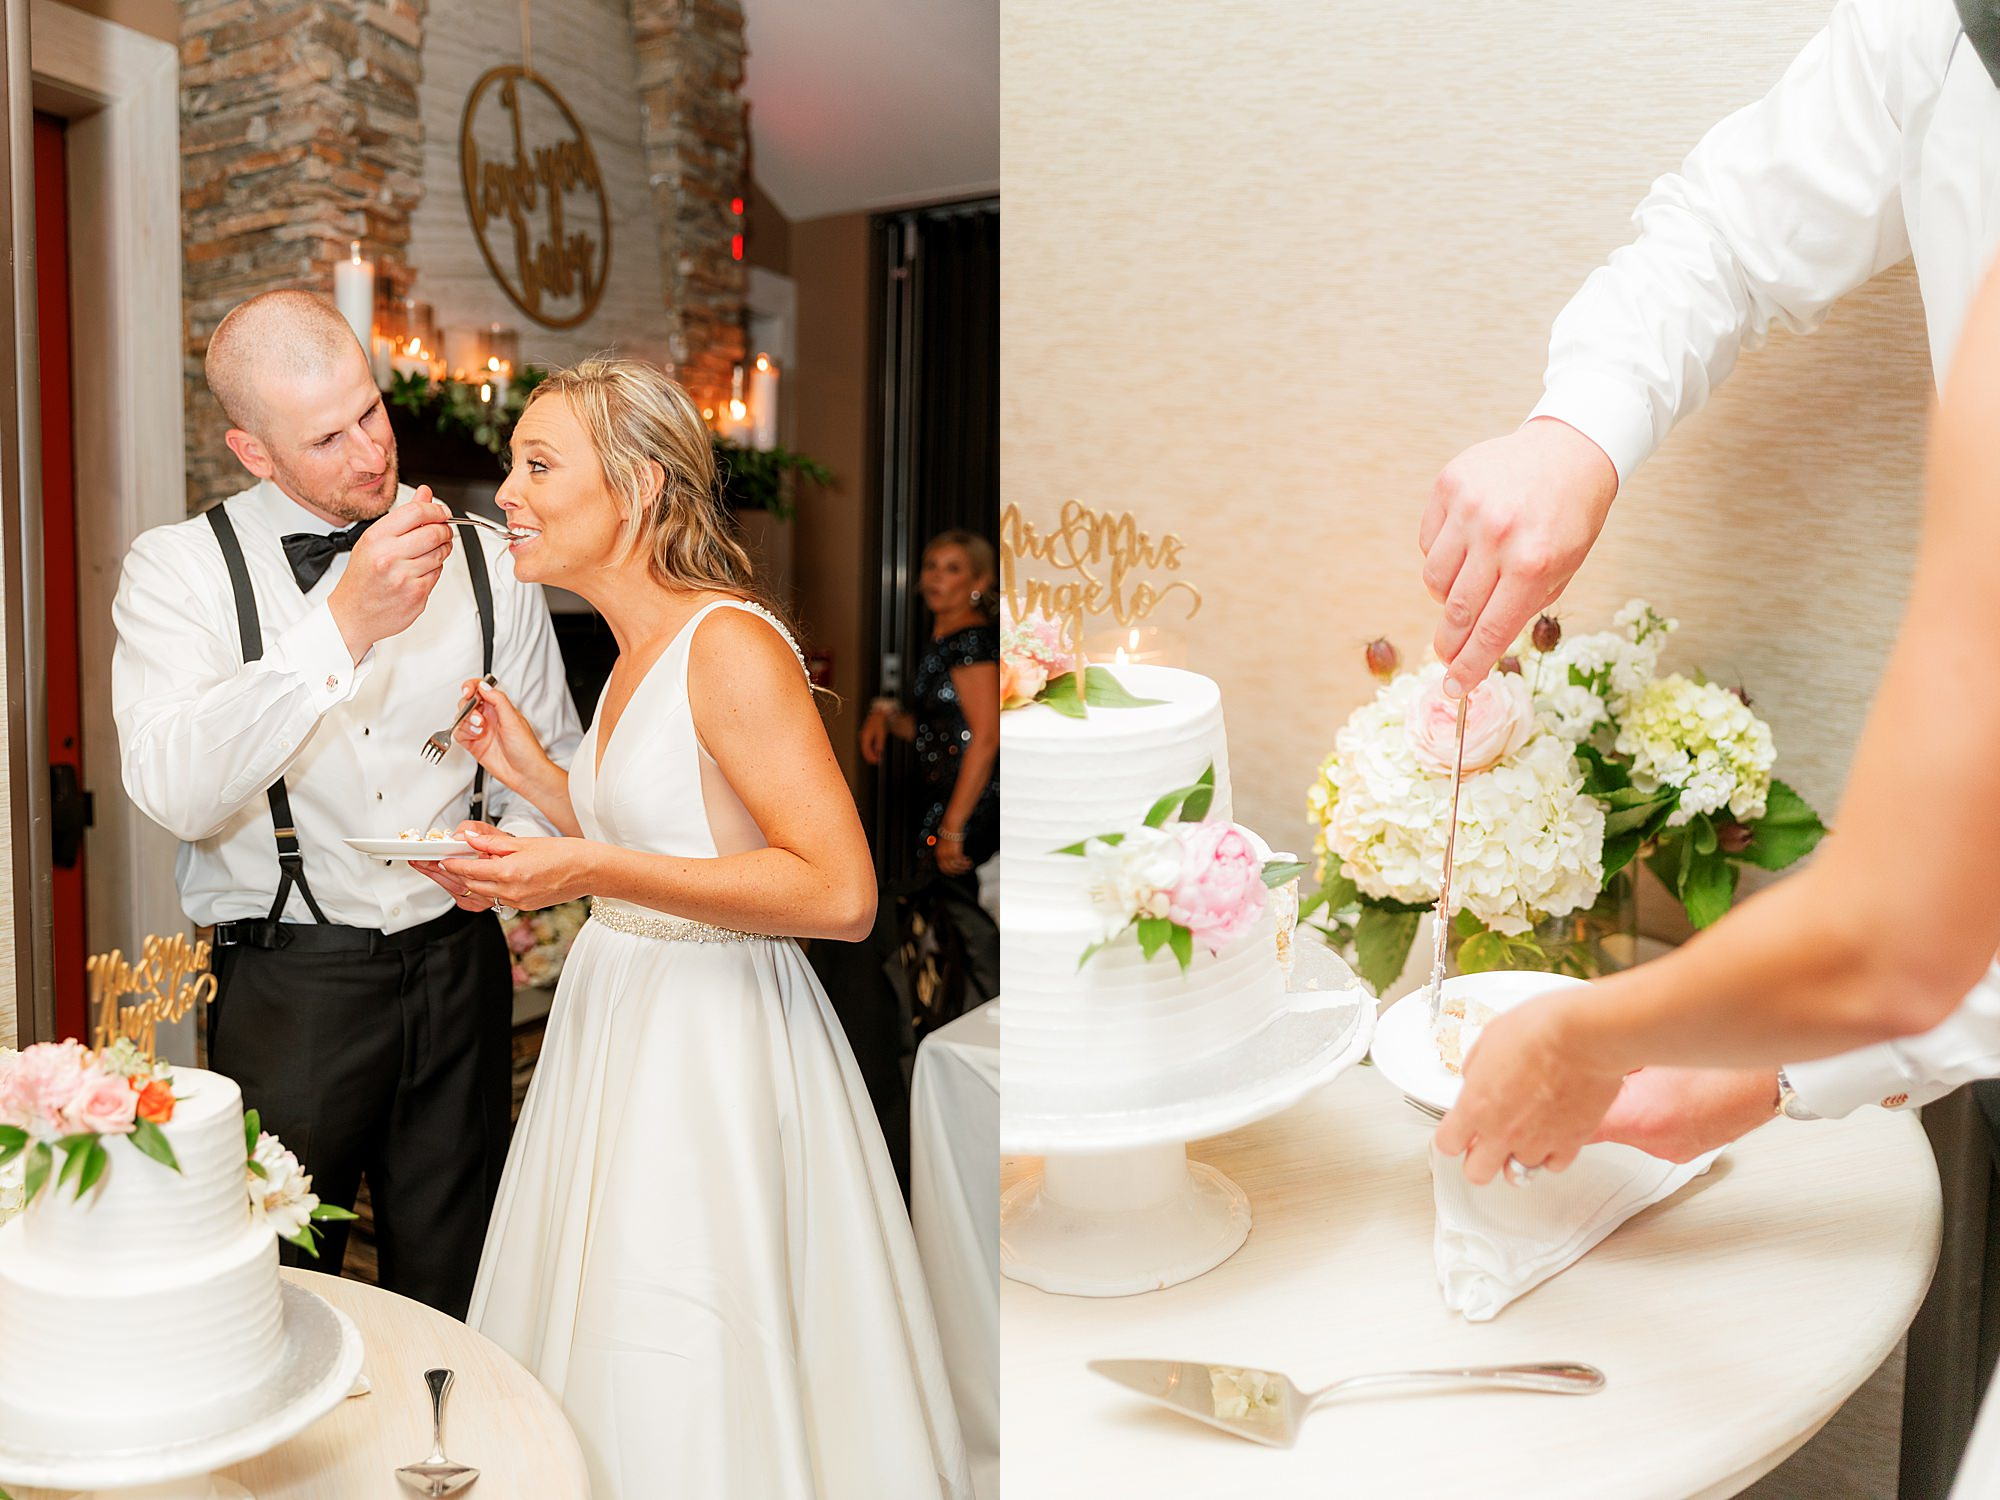 Natural and Vibrant Wedding Photography at the Reeds in Stone Harbor NJ by Magdalena Studios 0068